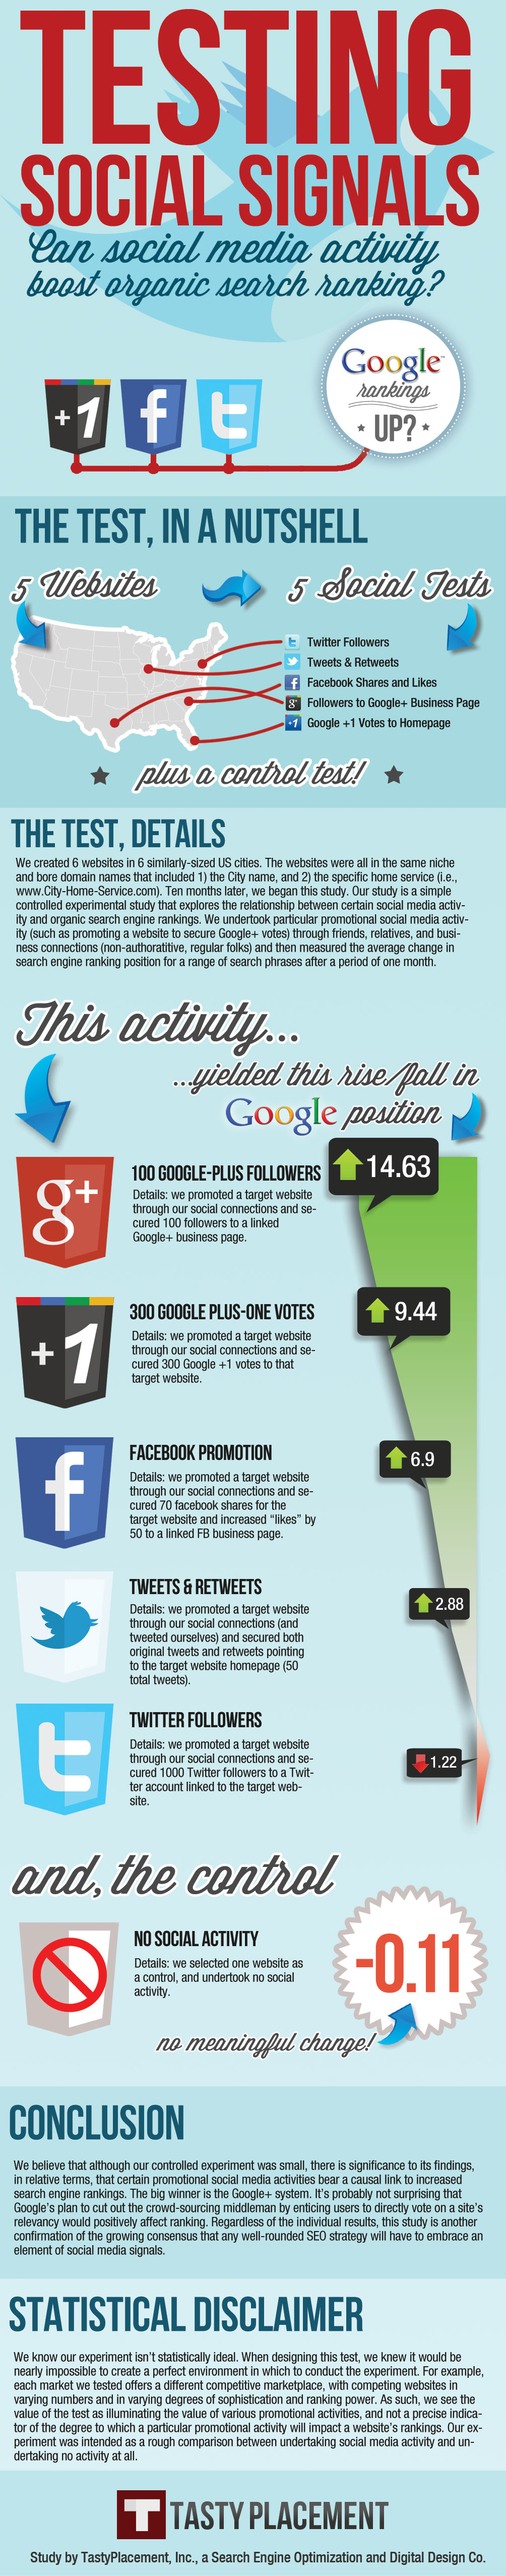 Google Plus Infographic Testing Social Signals